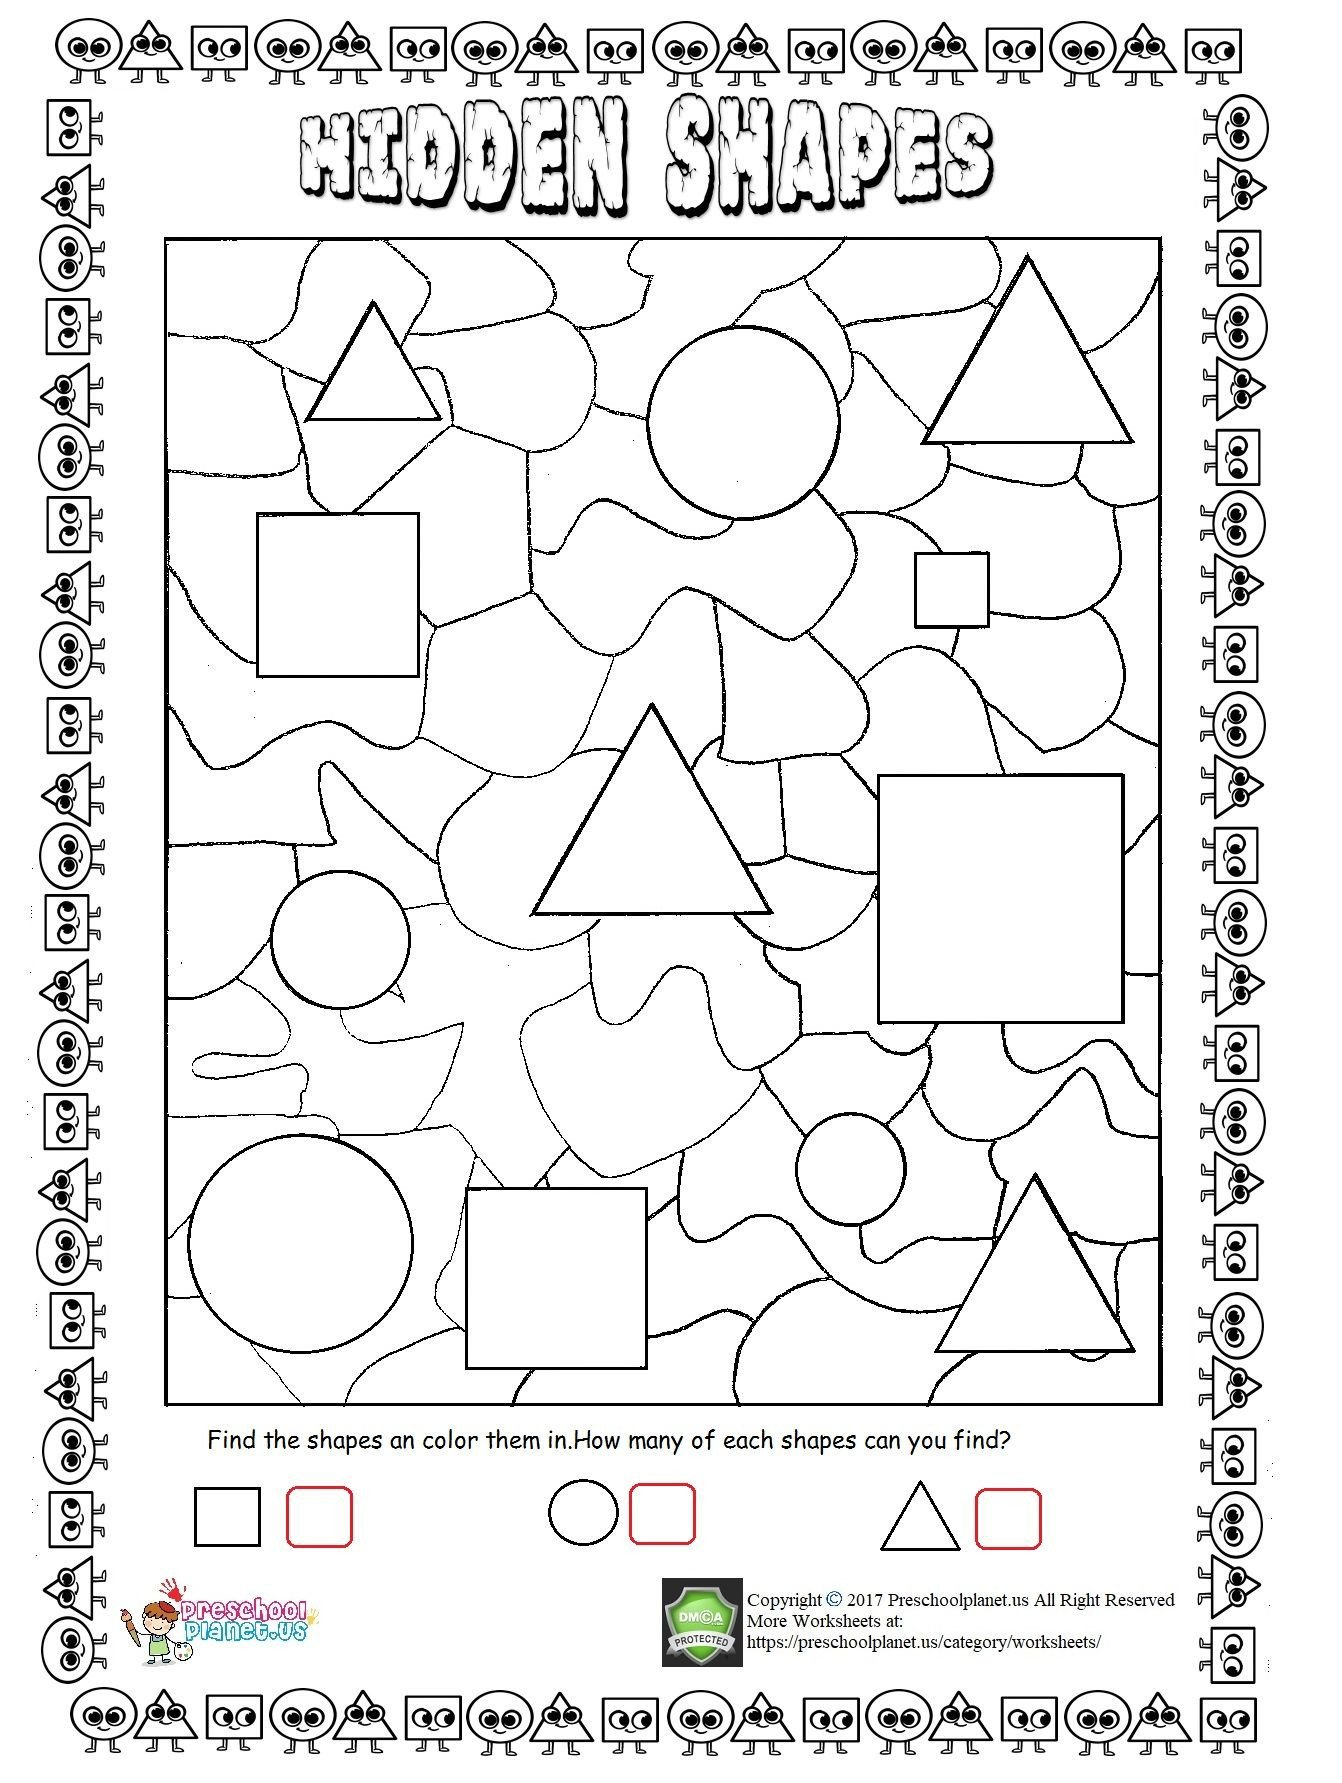 Geometric Shapes Patterns Worksheets Geometric Shapes Patterns Worksheets Printable and Nets